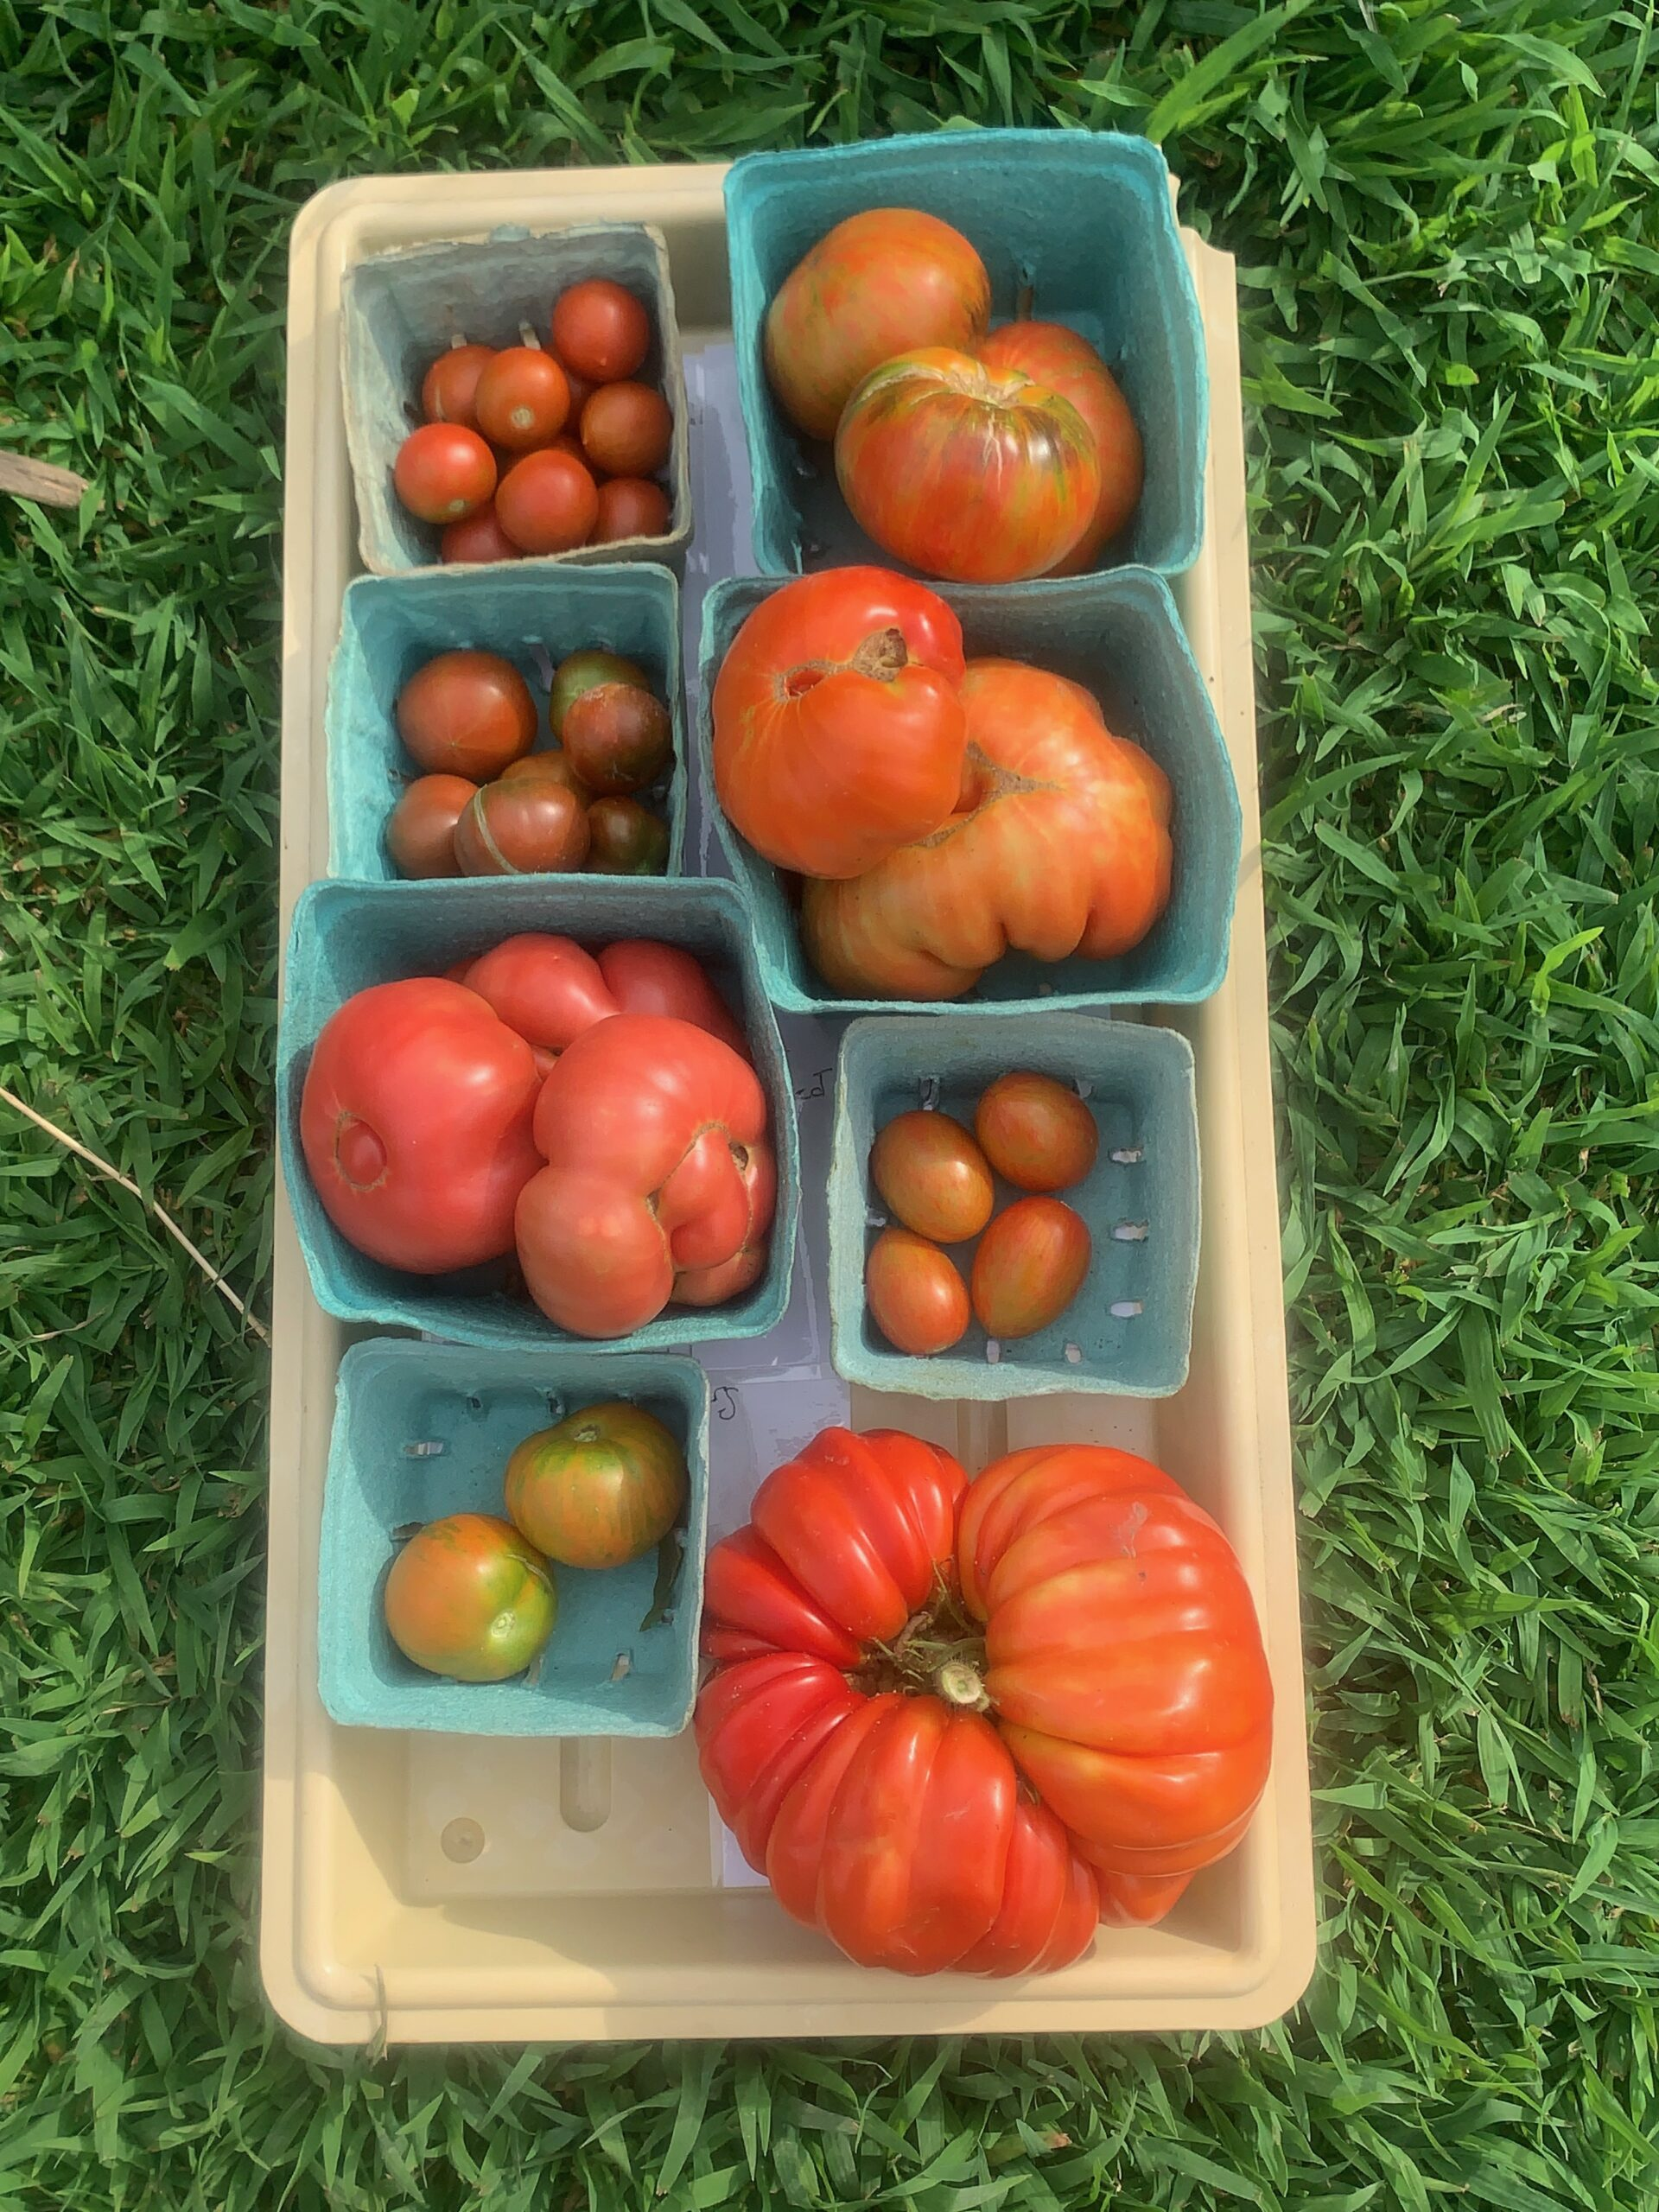 Image of a tray of tomatoes, all sizes from small to gigantic.